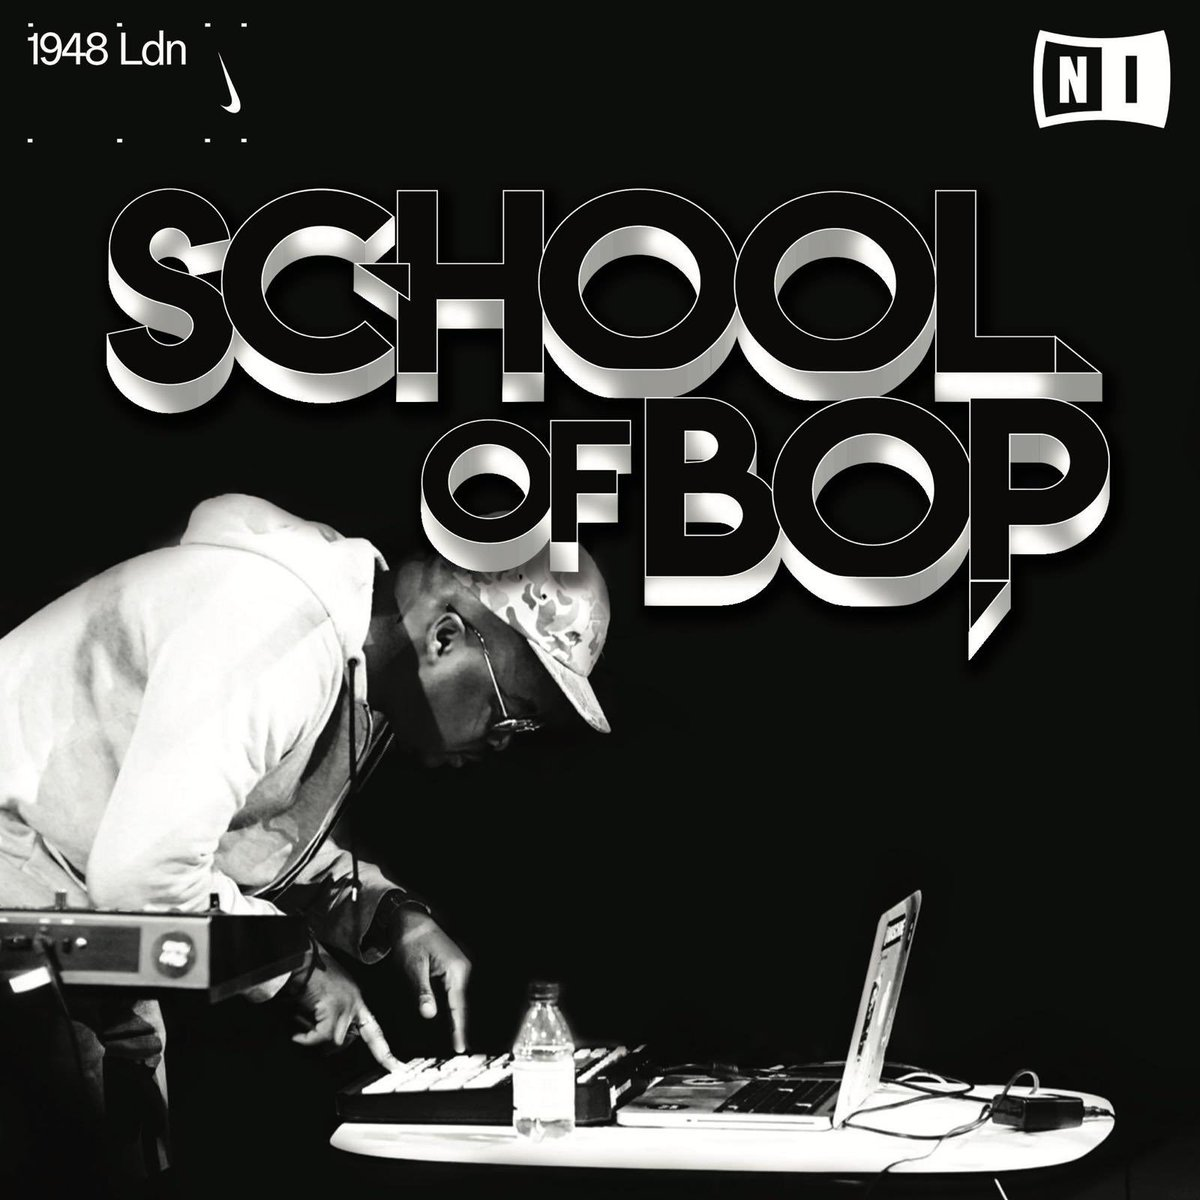 Super gassed to announce I am hosting a summer production workshop called School of Bop powered by Native Instruments @NI_News (KOMPLETE and MASCHINE) and 1948Ldn.   Its taking place at 1948Ldn, Nike community space in Shoreditch.   Apply today:  http:// bit.ly/SchoolOfBop    <br>http://pic.twitter.com/ObvJZqiq1L